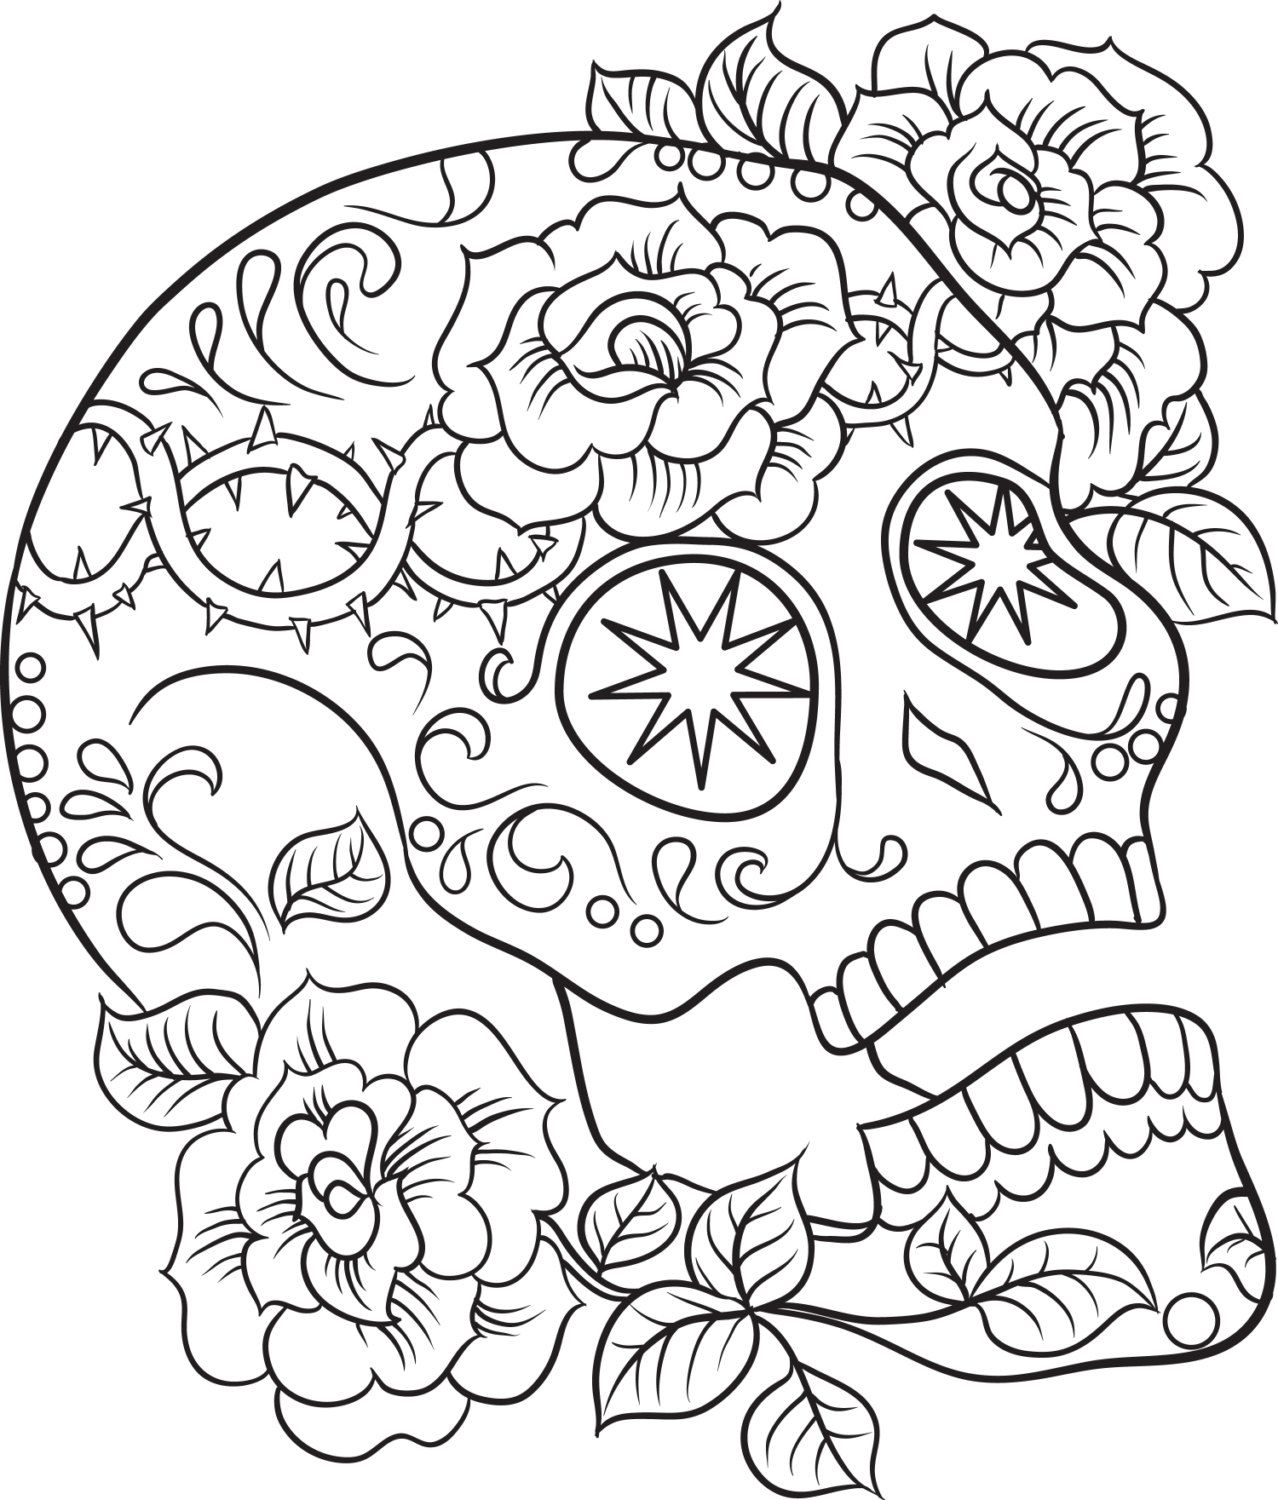 Color Me Sugar Skulls, Coloring Ebook, Print Out and Color ...